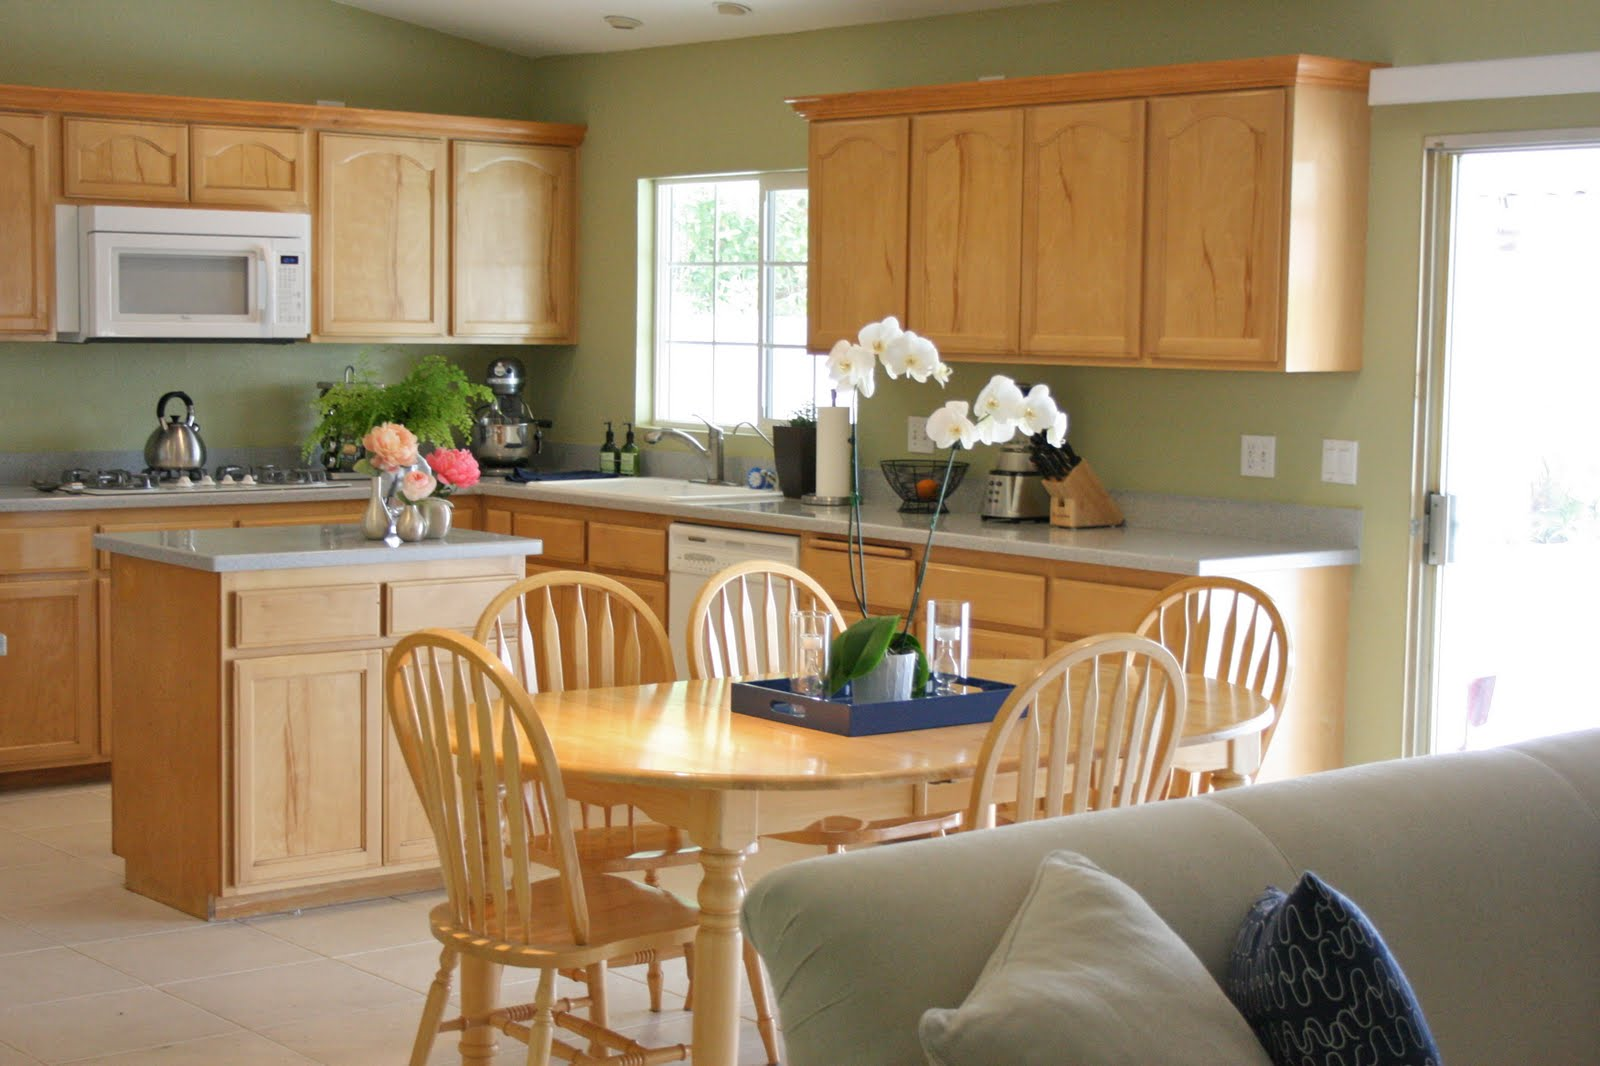 design gal & her handyman: {featured project: before & after kitchen)